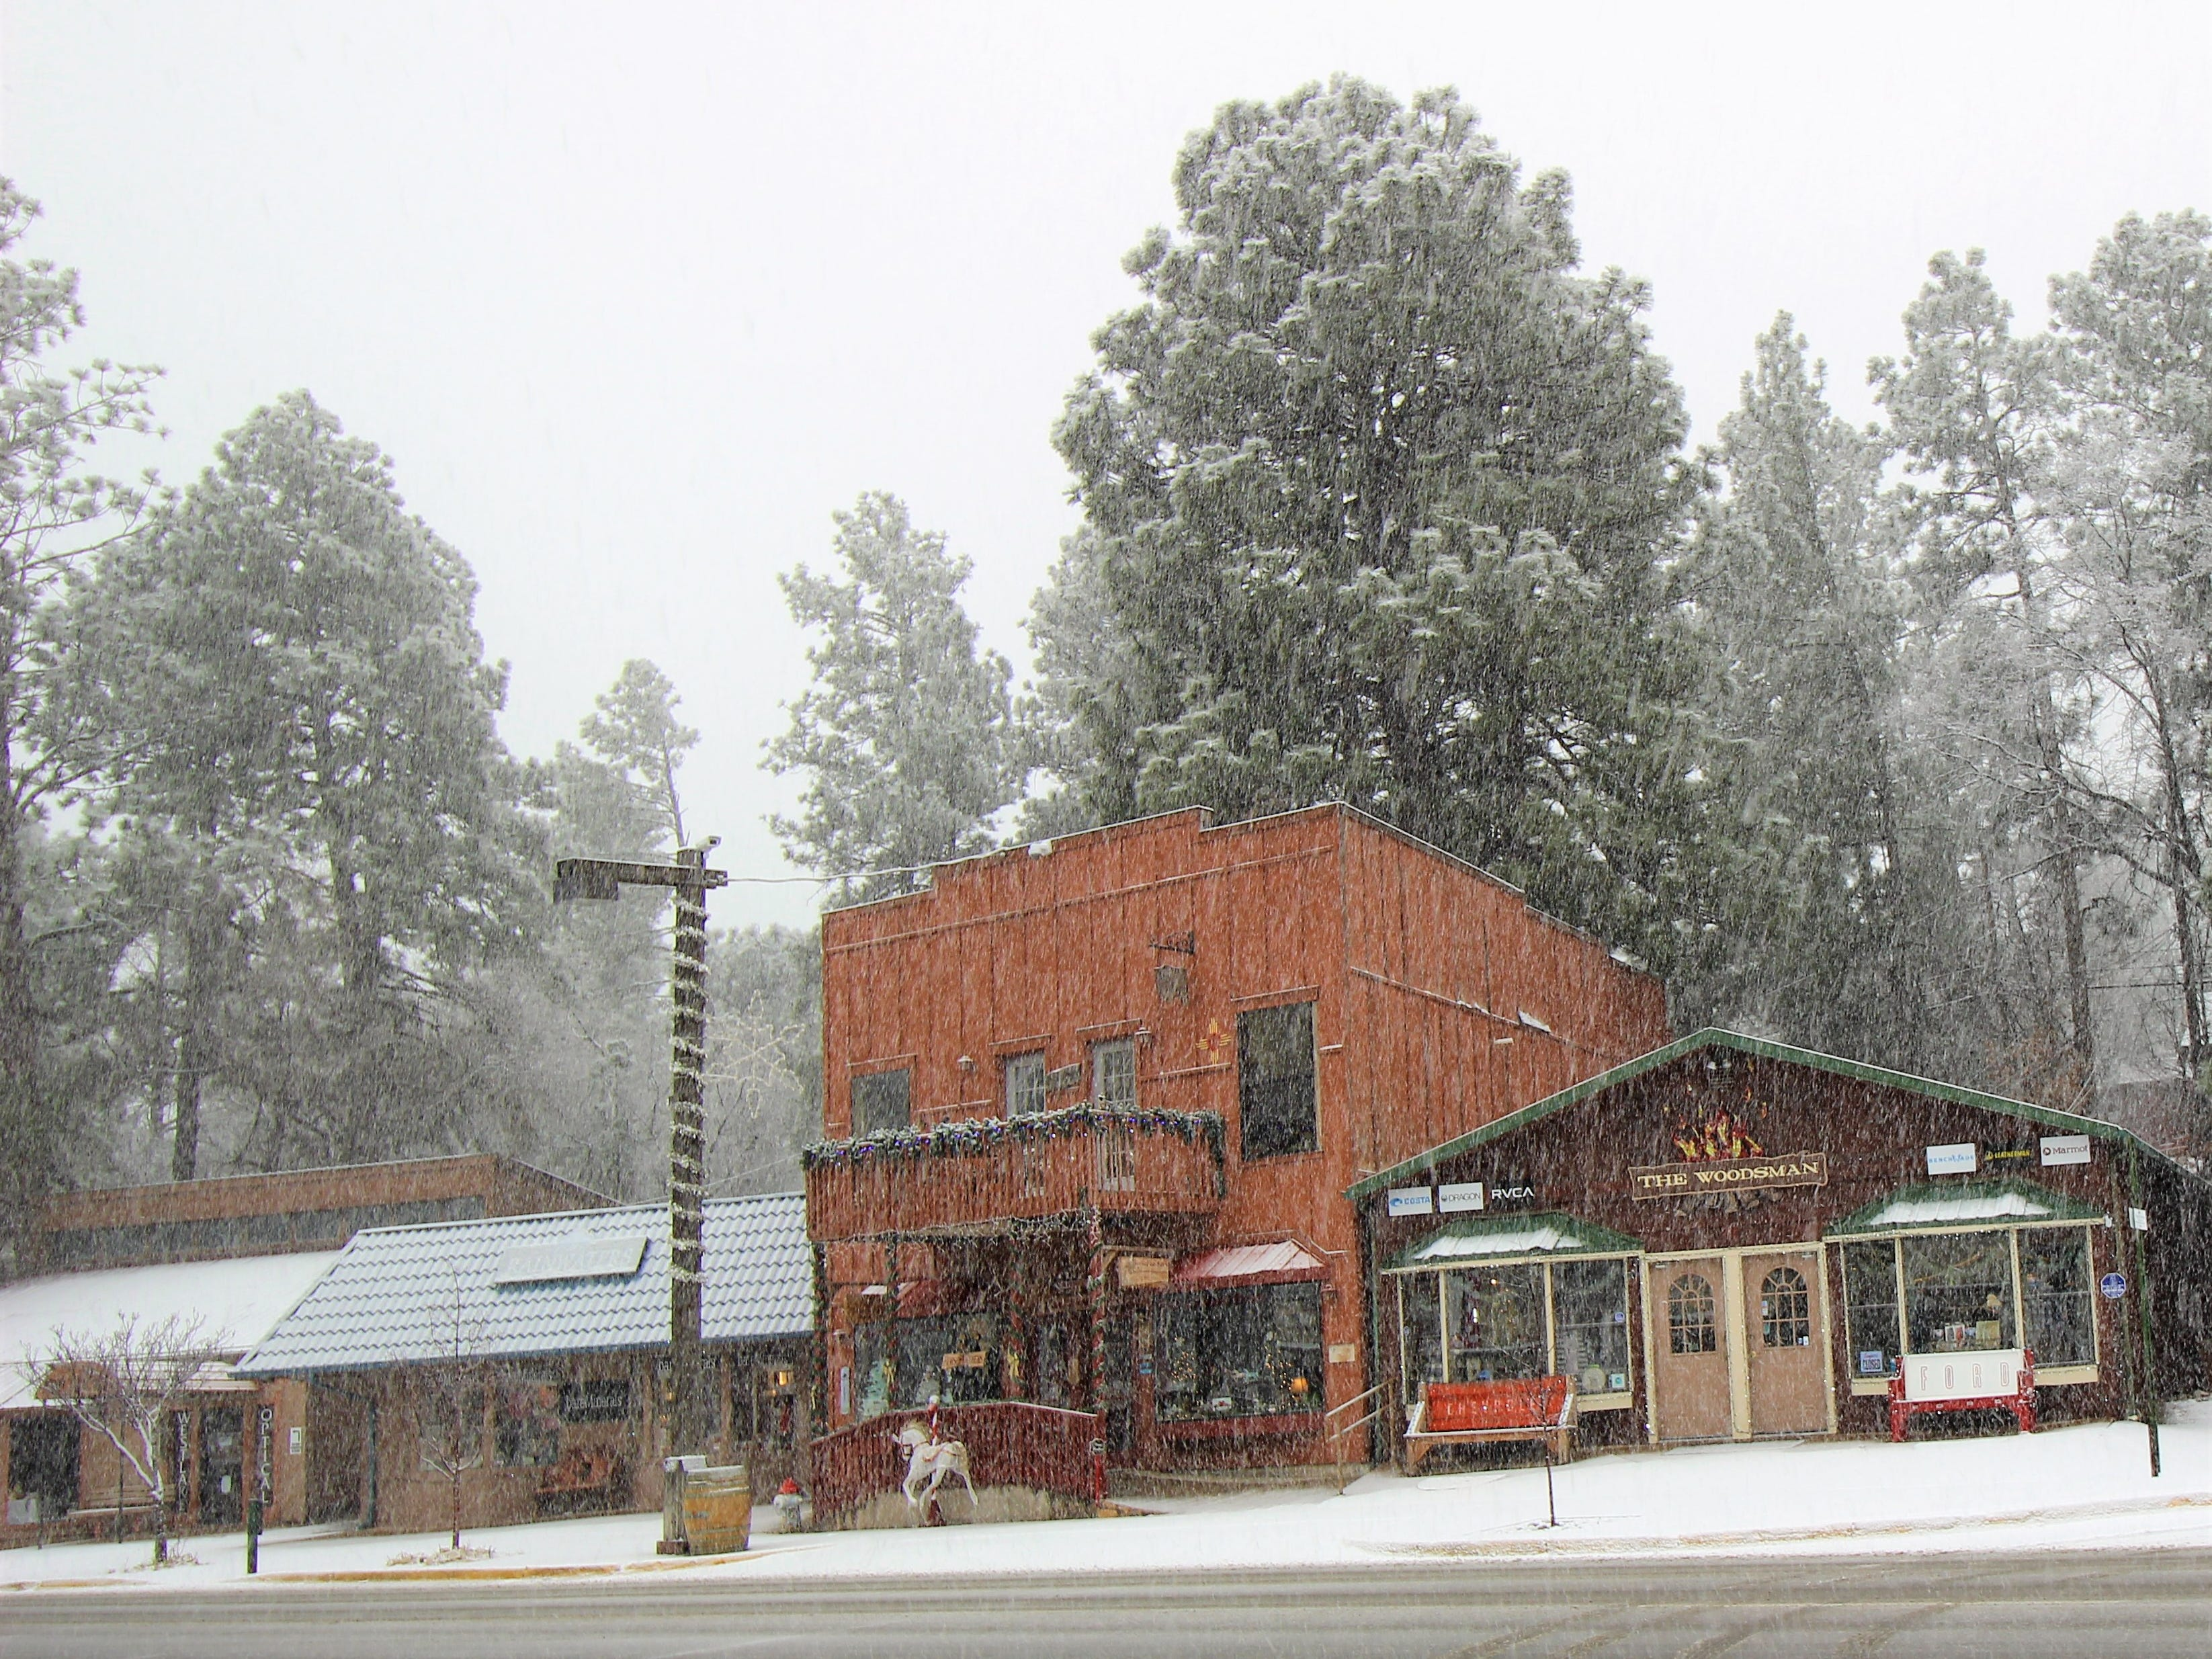 Midtown Ruidoso sees snowfall early on Wed. morning bringing a better late than never white winter holiday to the Village.